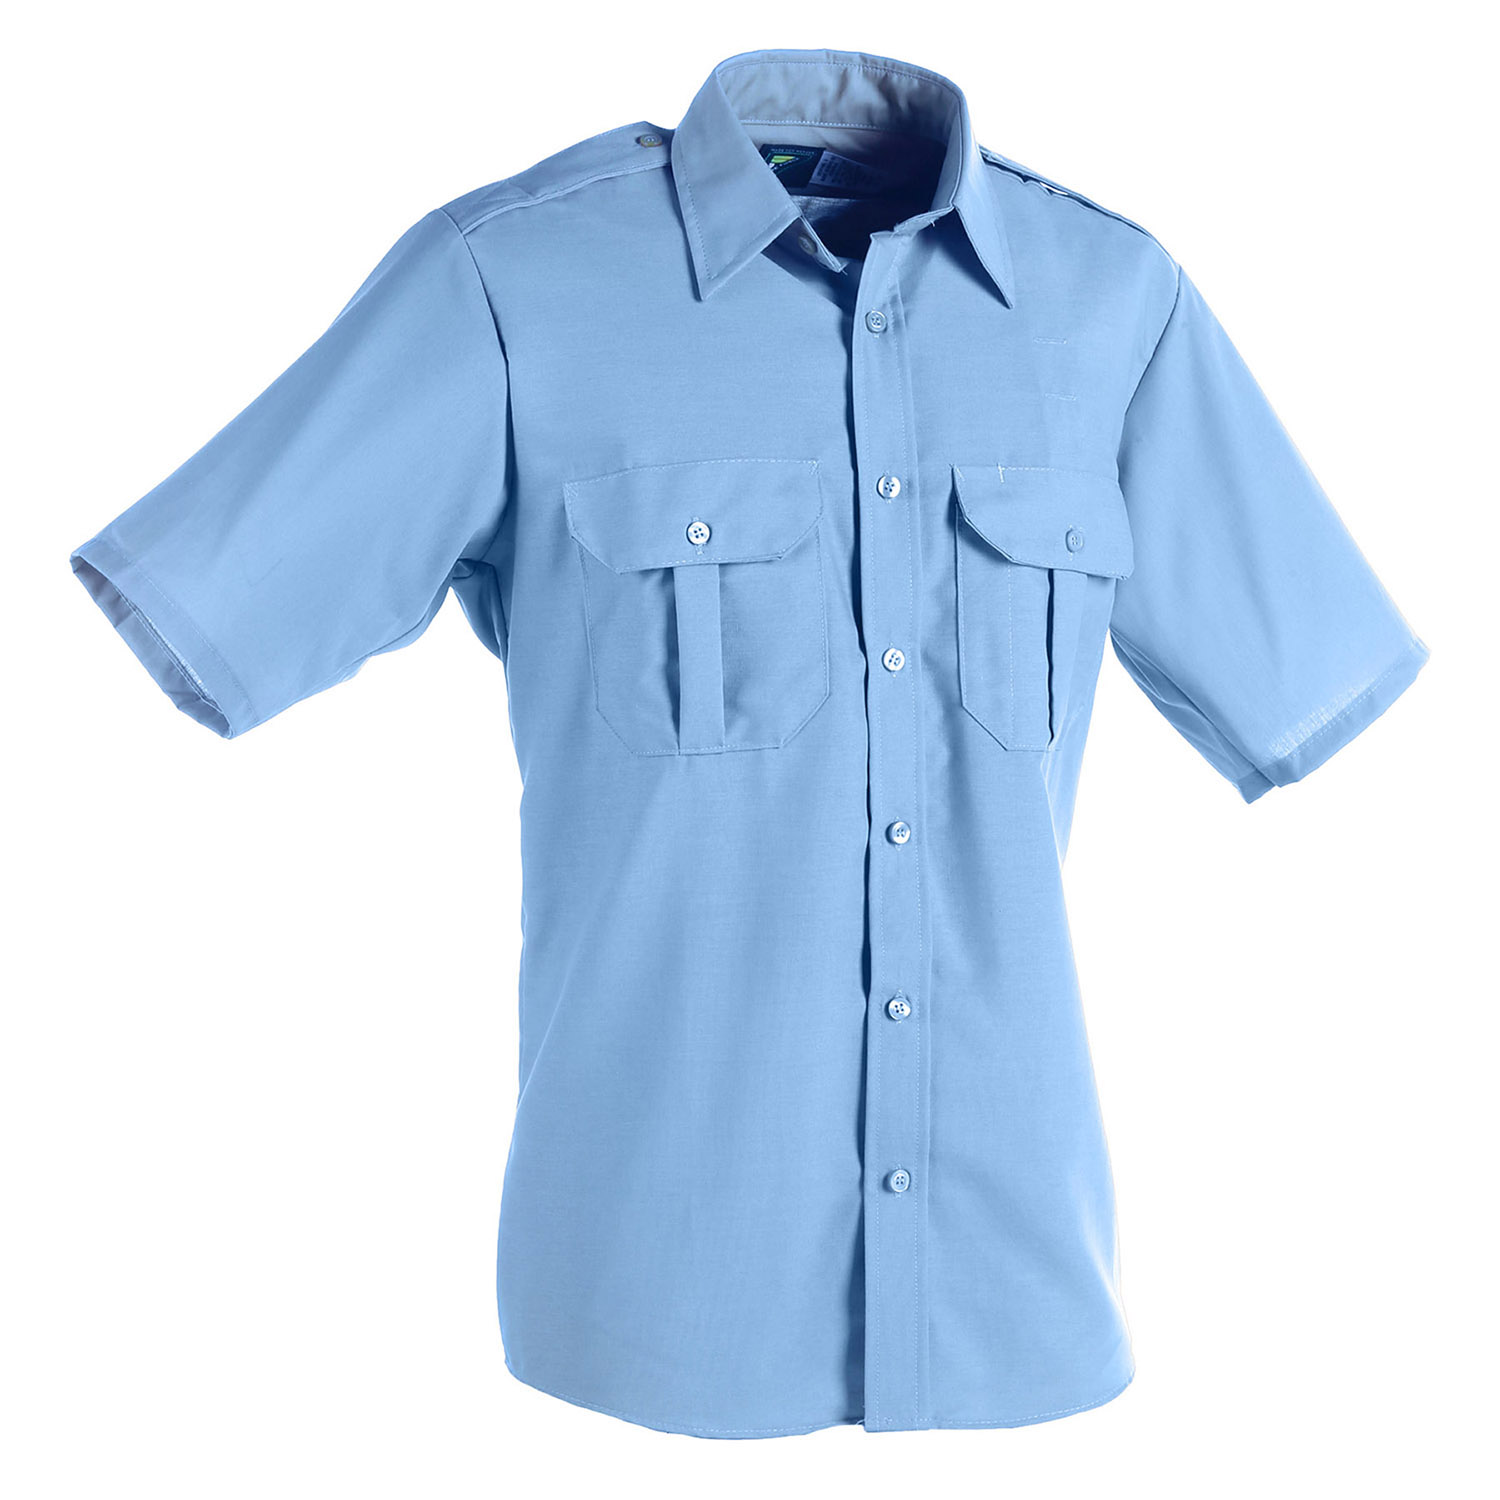 Horace Small Short Sleeve Traditional Uniform Shirt